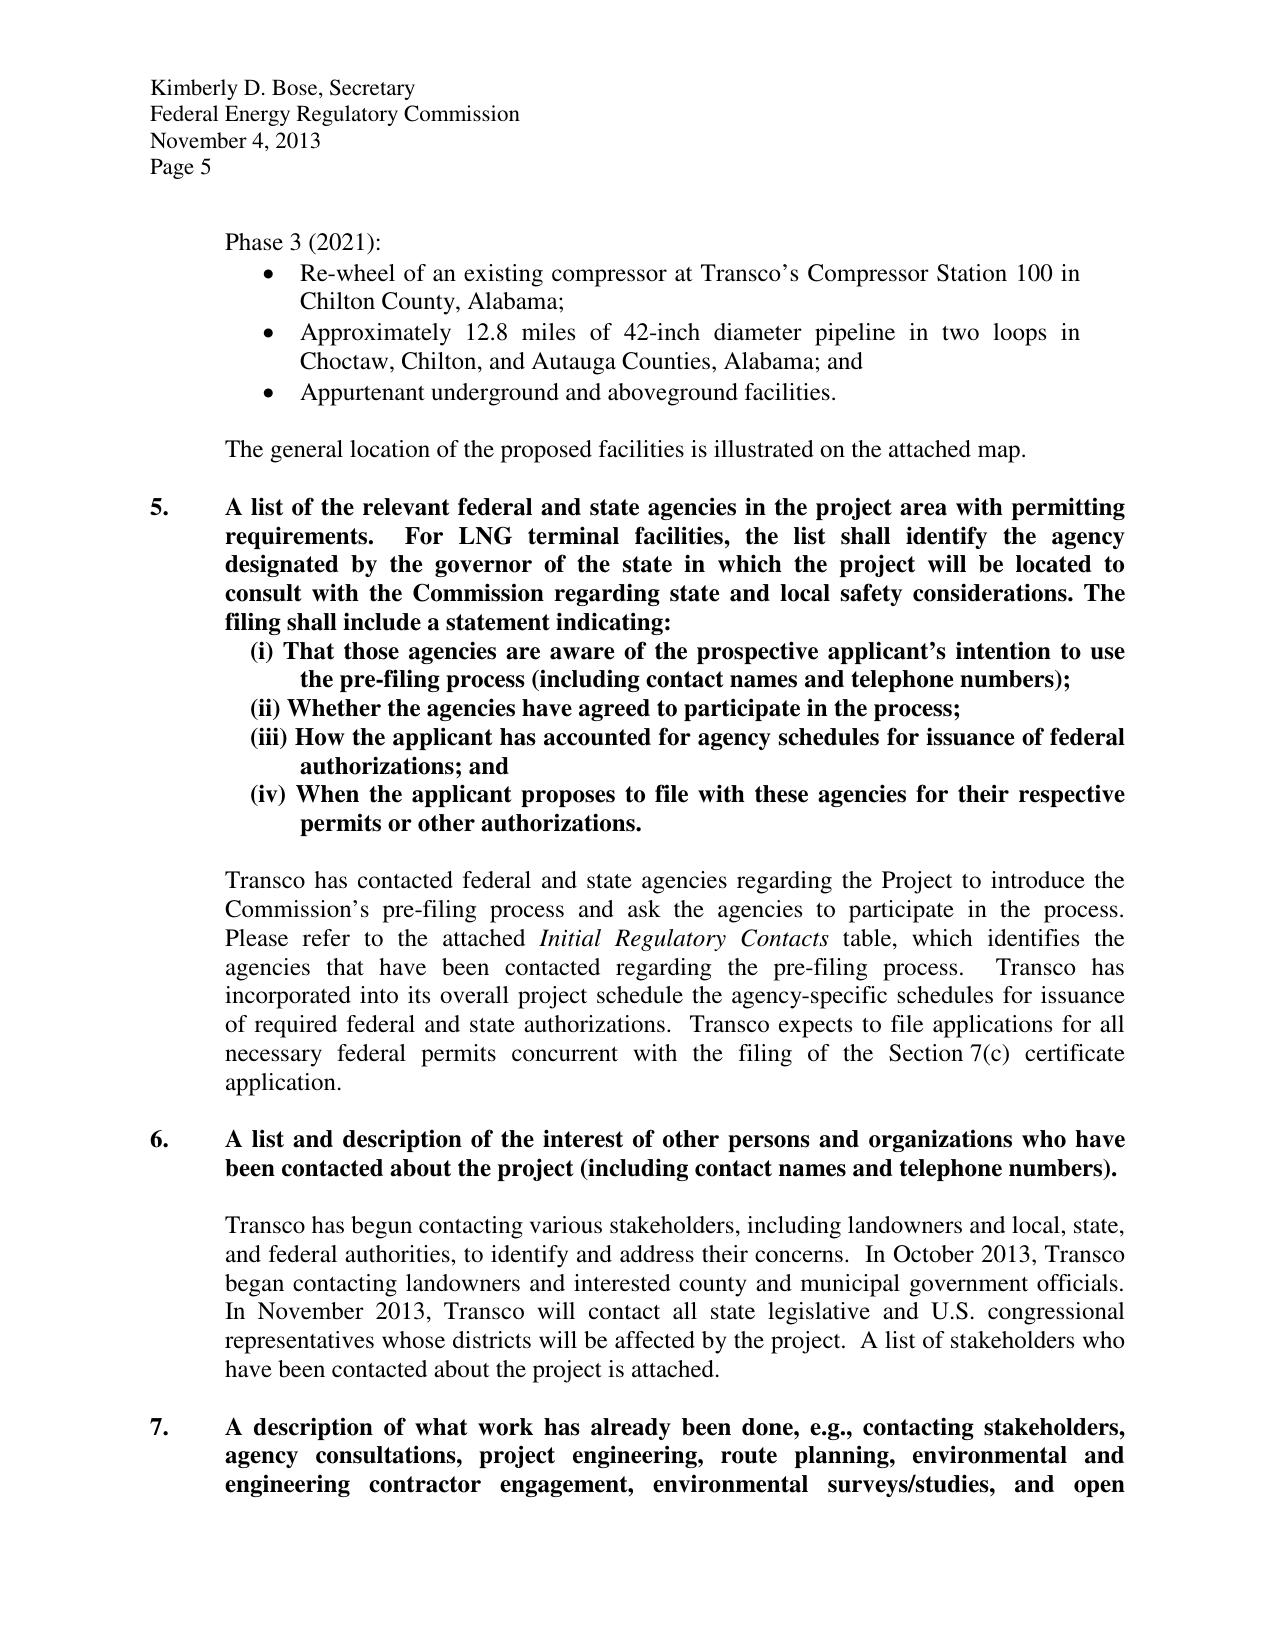 Lists of permitting agencies and other contacts, in Request for Pre-Filing Review, by Transcontinental Gas Pipe Line, for FERC Docket No. PF14-6, 4 November 2013